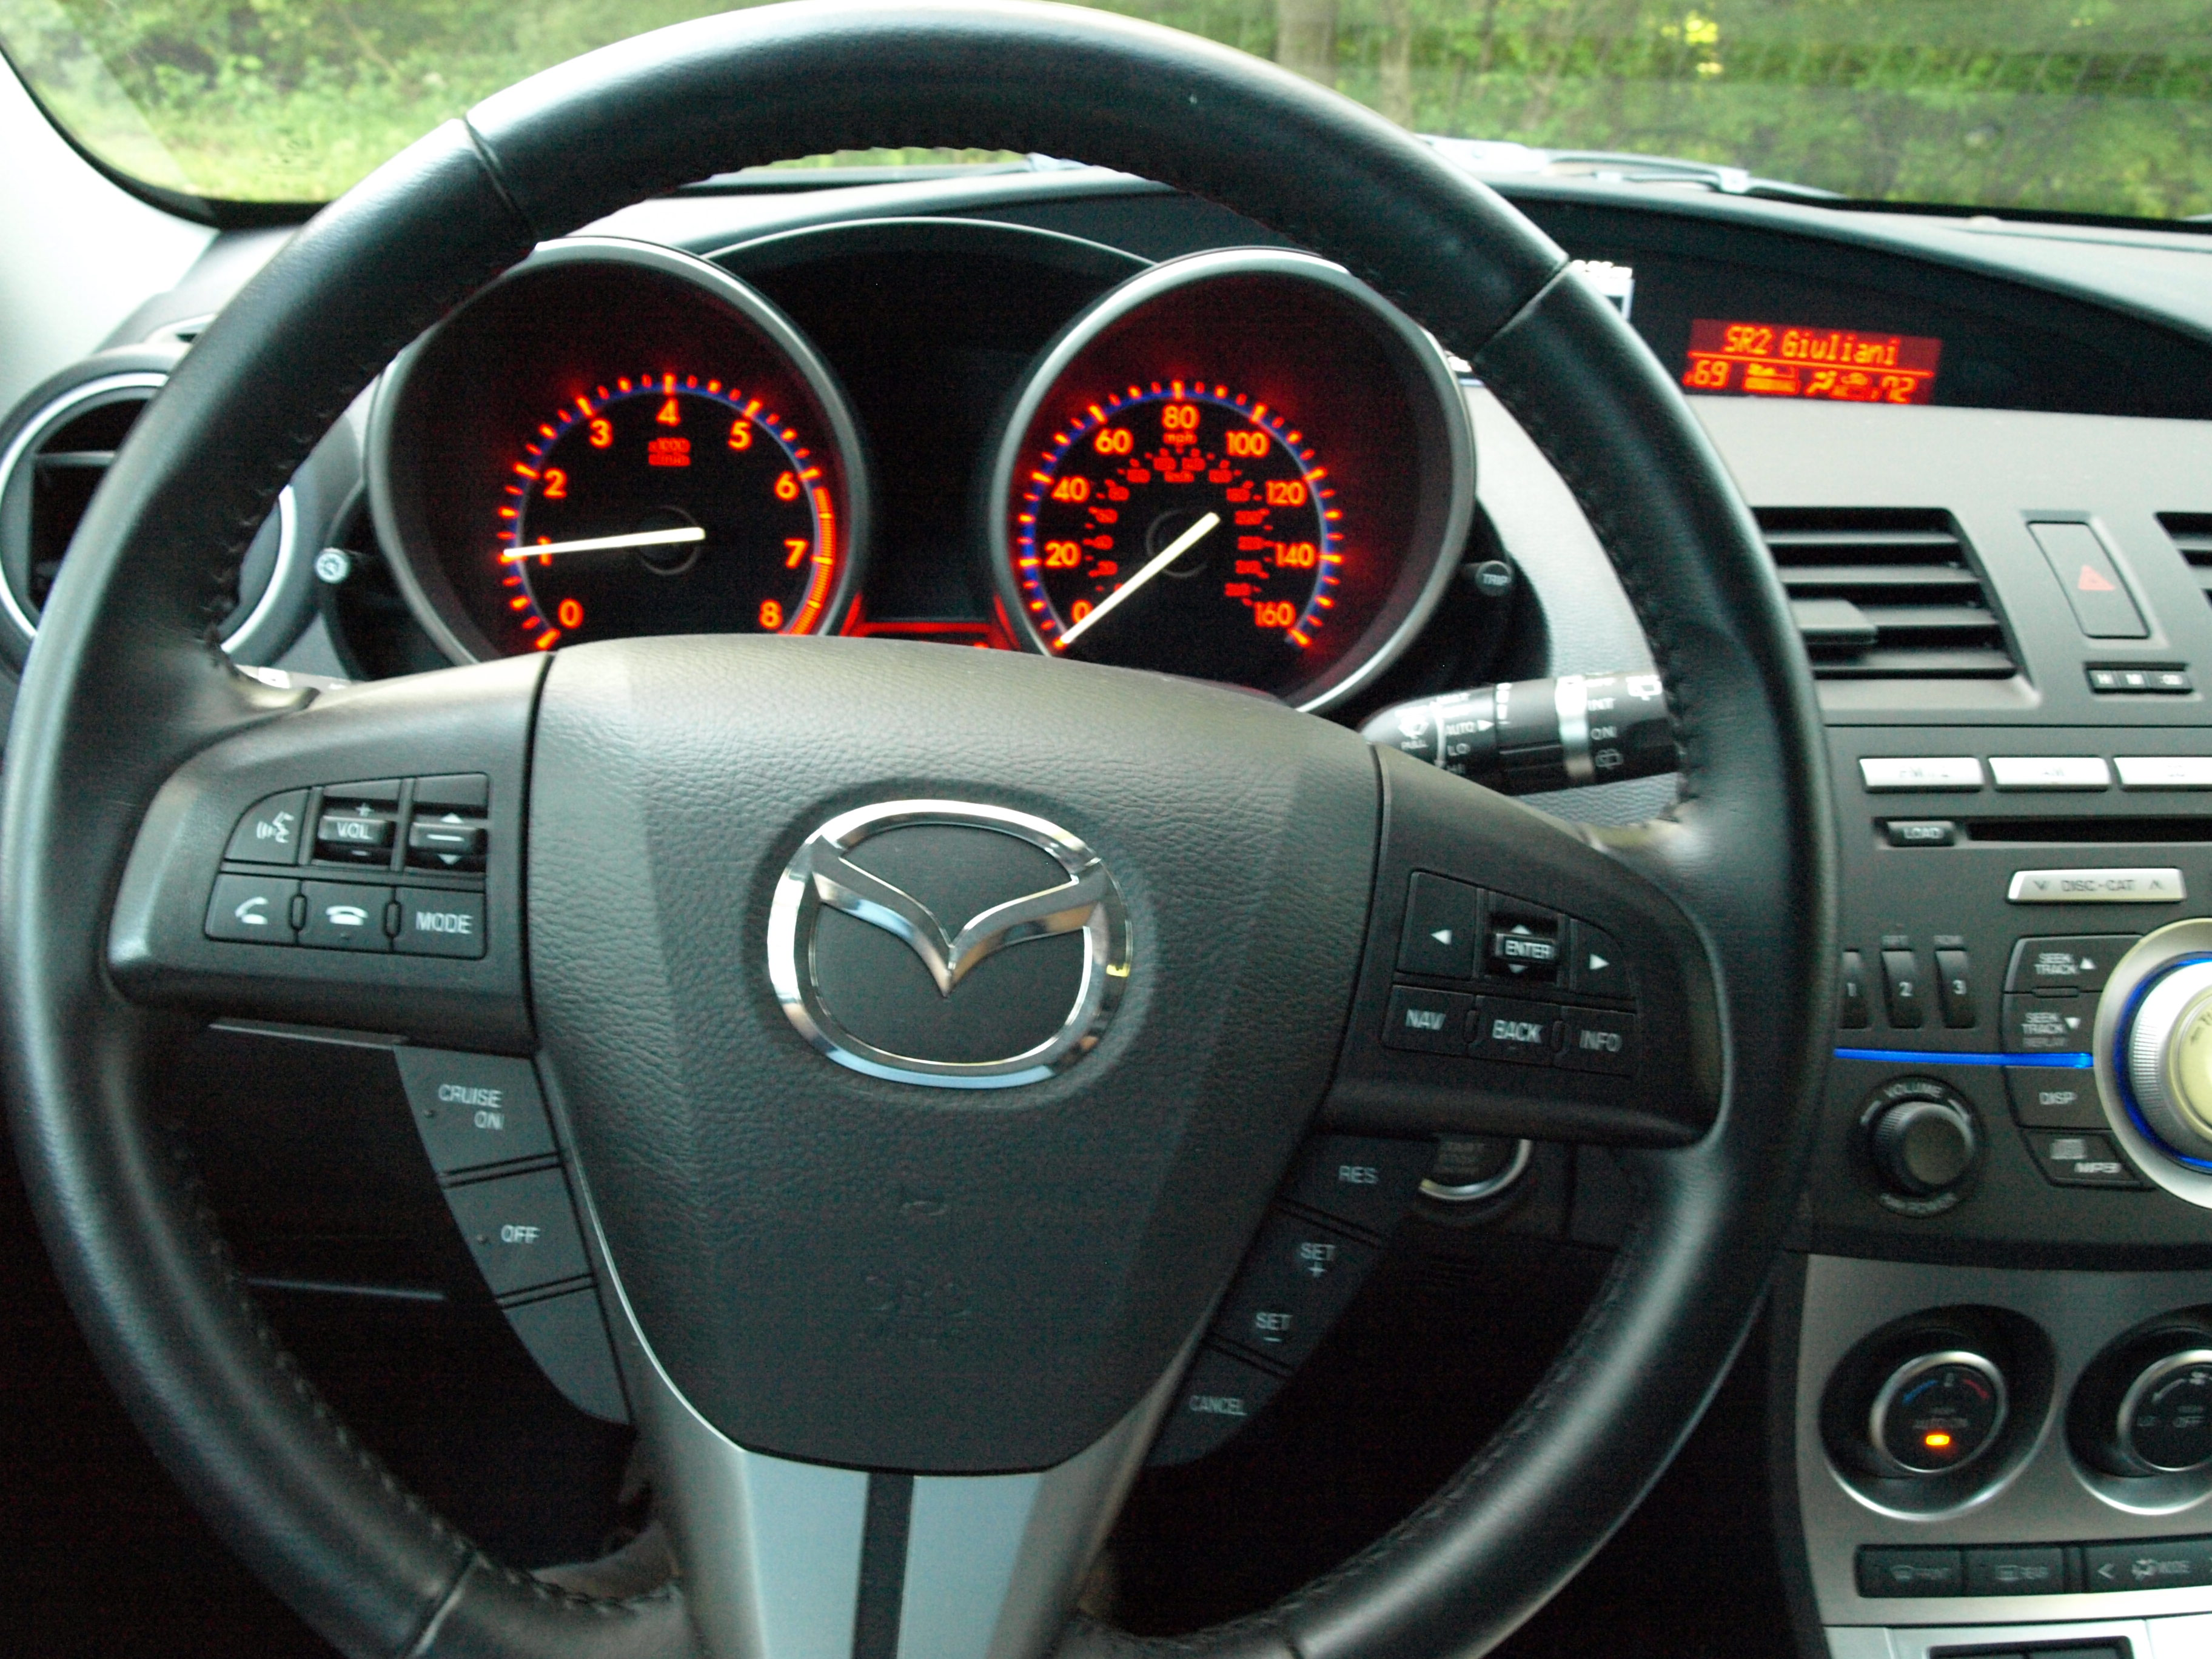 2010 Mazda3 Grand Touring (select To View Enlarged Photo)